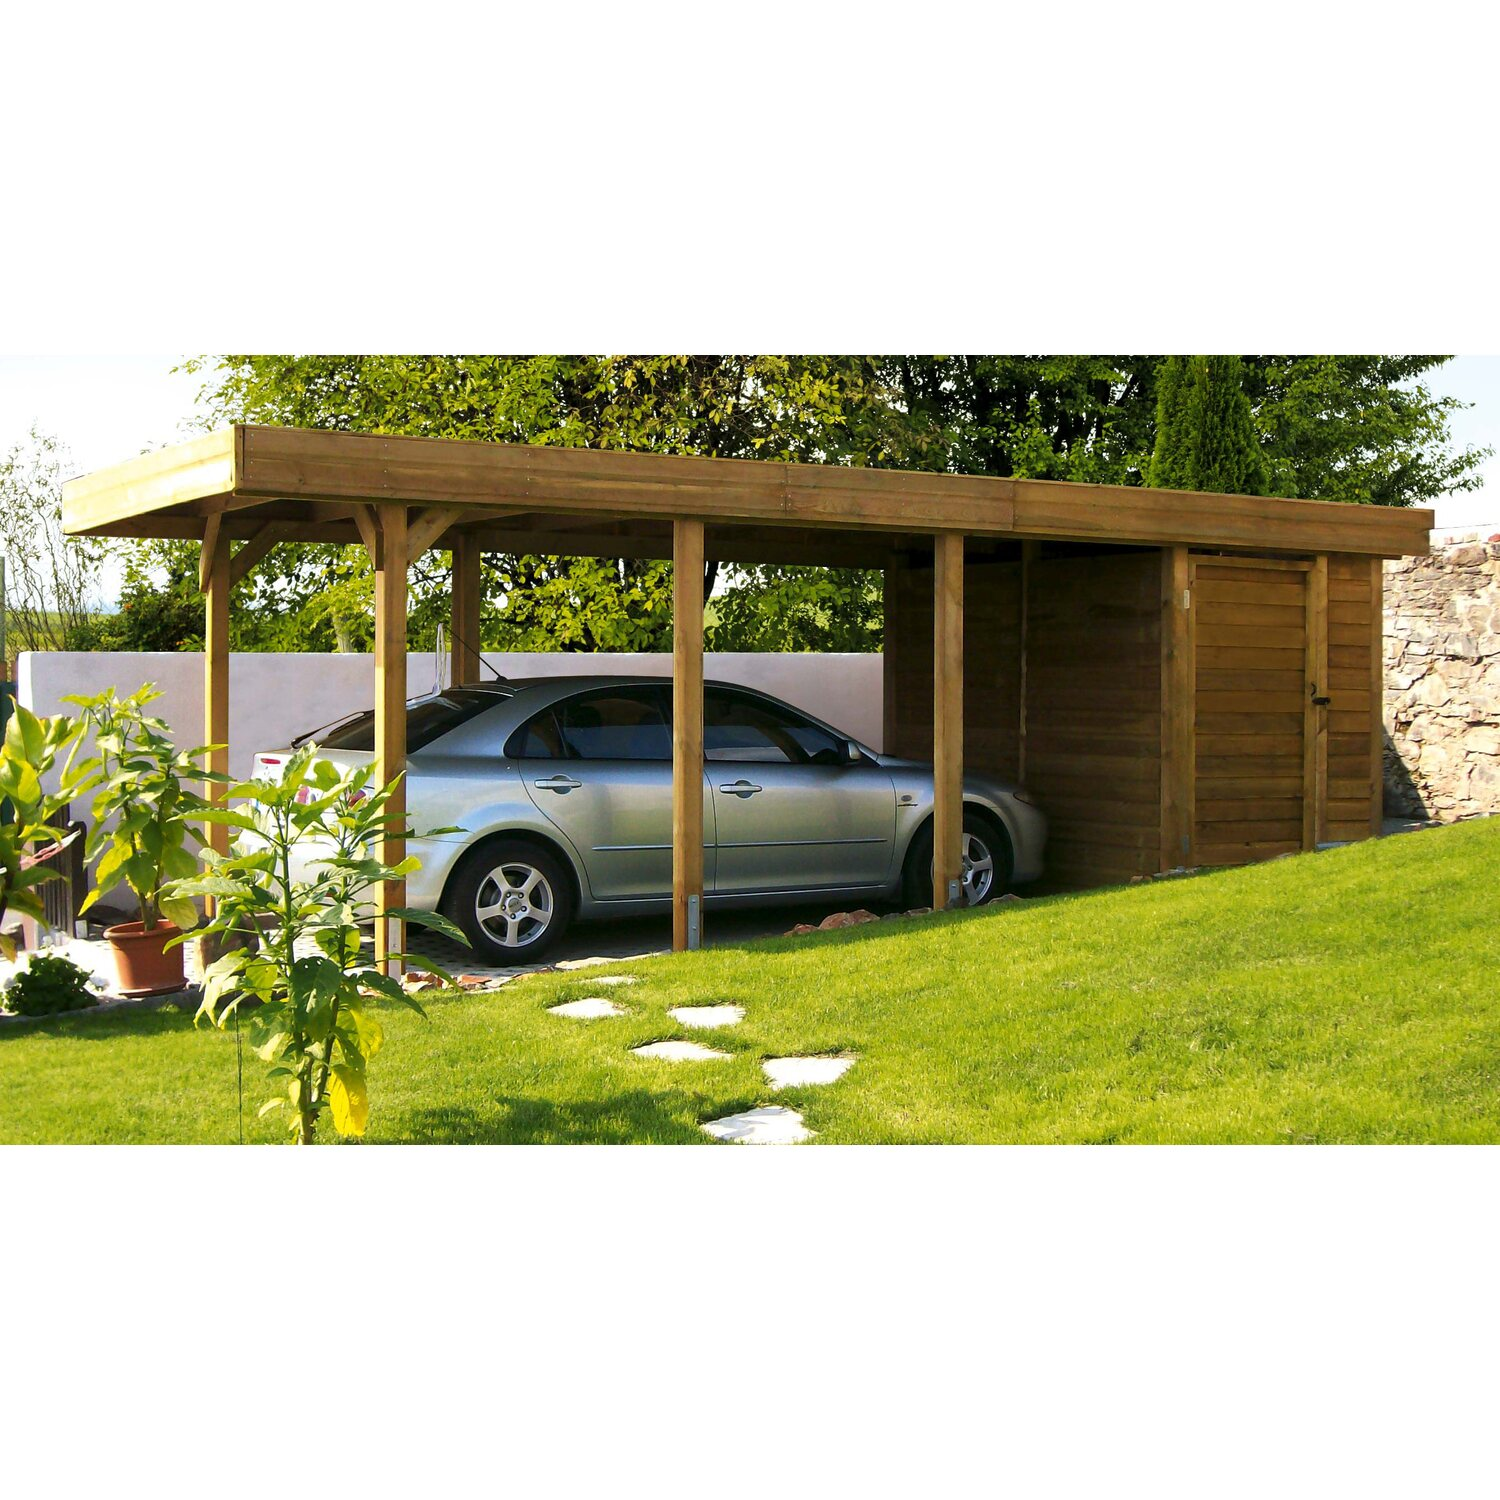 skan holz flachdach einzelcarport profilschalung mit abstellraum 315 cm x 713 cm kaufen bei obi. Black Bedroom Furniture Sets. Home Design Ideas